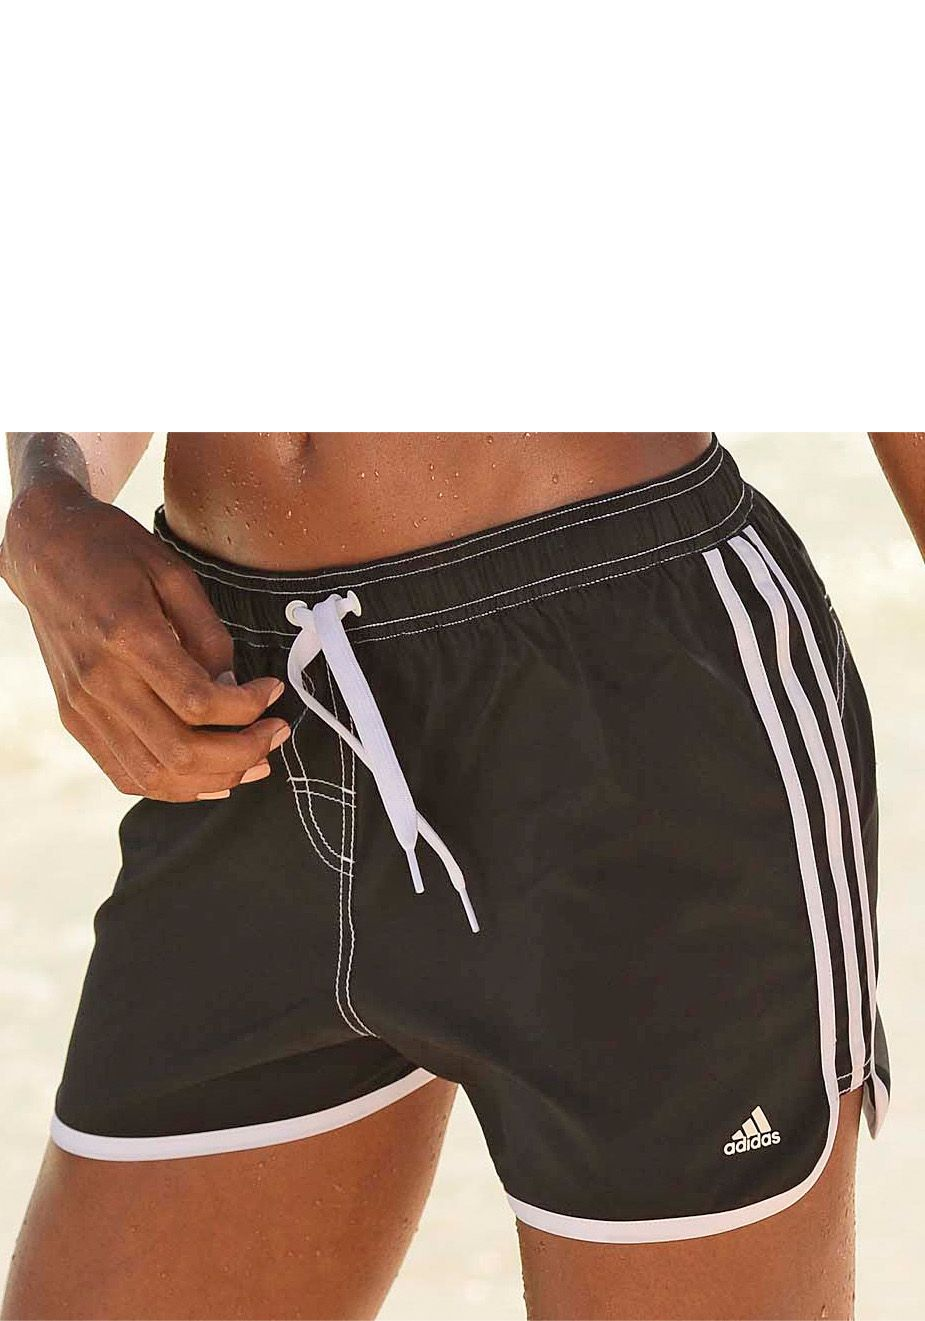 Pin Adidas Performance Badeshorts Basic Sh Sl In Blau Gr Xl Fà ¼r